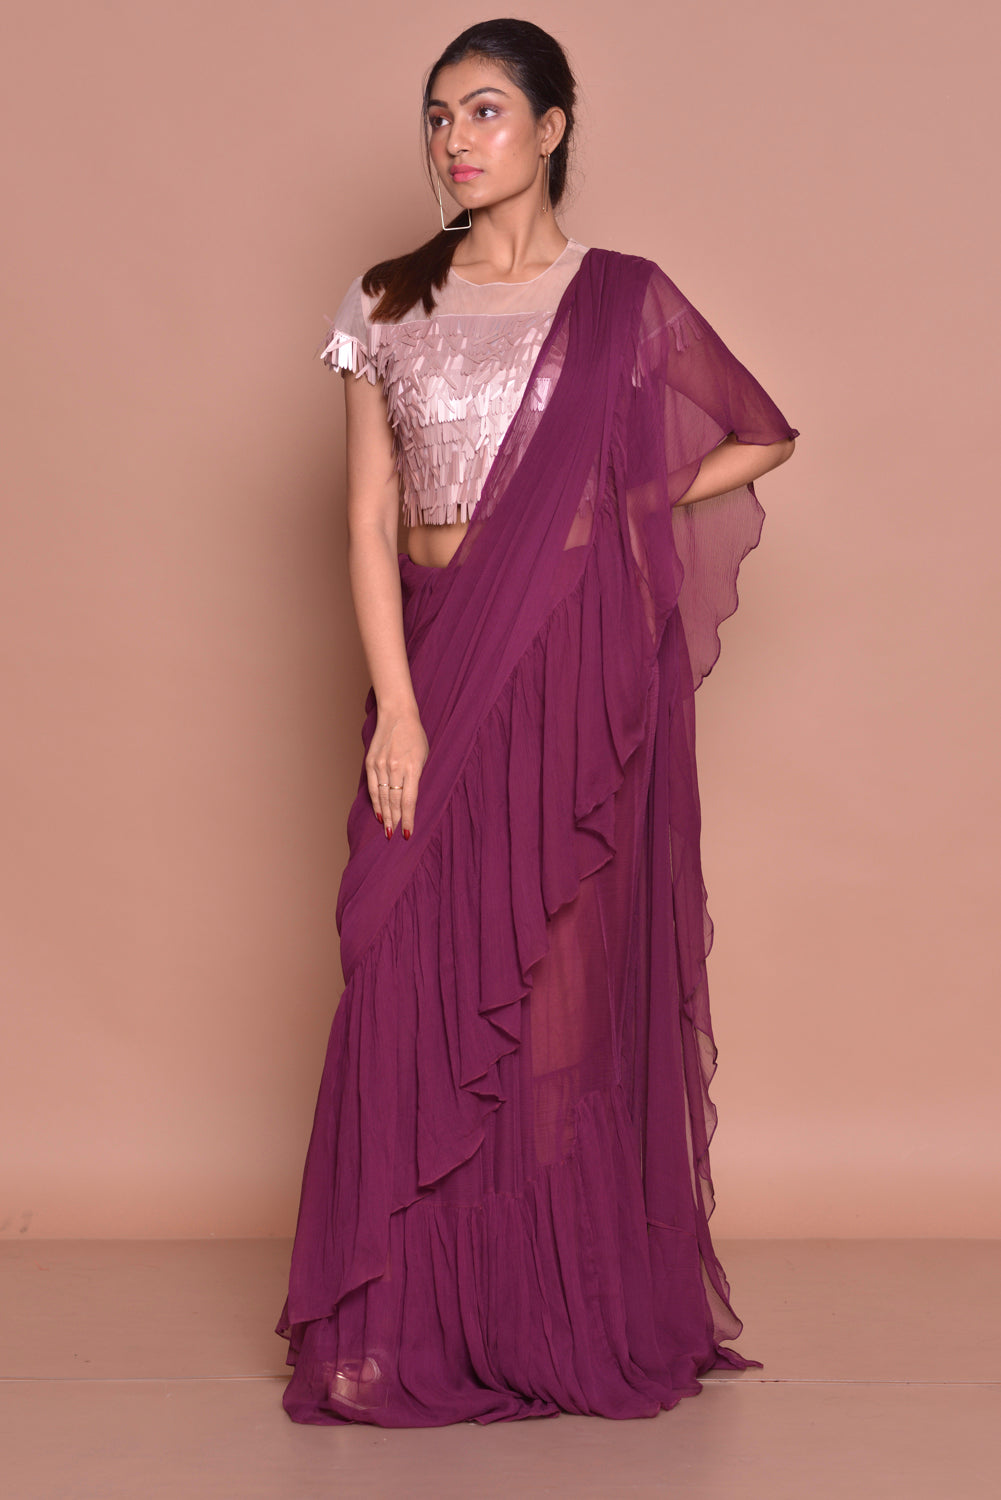 Shop contemporary purple georgette ruffle saree online in USA with pink sequin sari blouse. Set ethnic fashion goals with exquisite designer sarees with blouse, Banarasi sarees, Kanchipuram saris from Pure Elegance Indian luxury clothing store in USA.-side